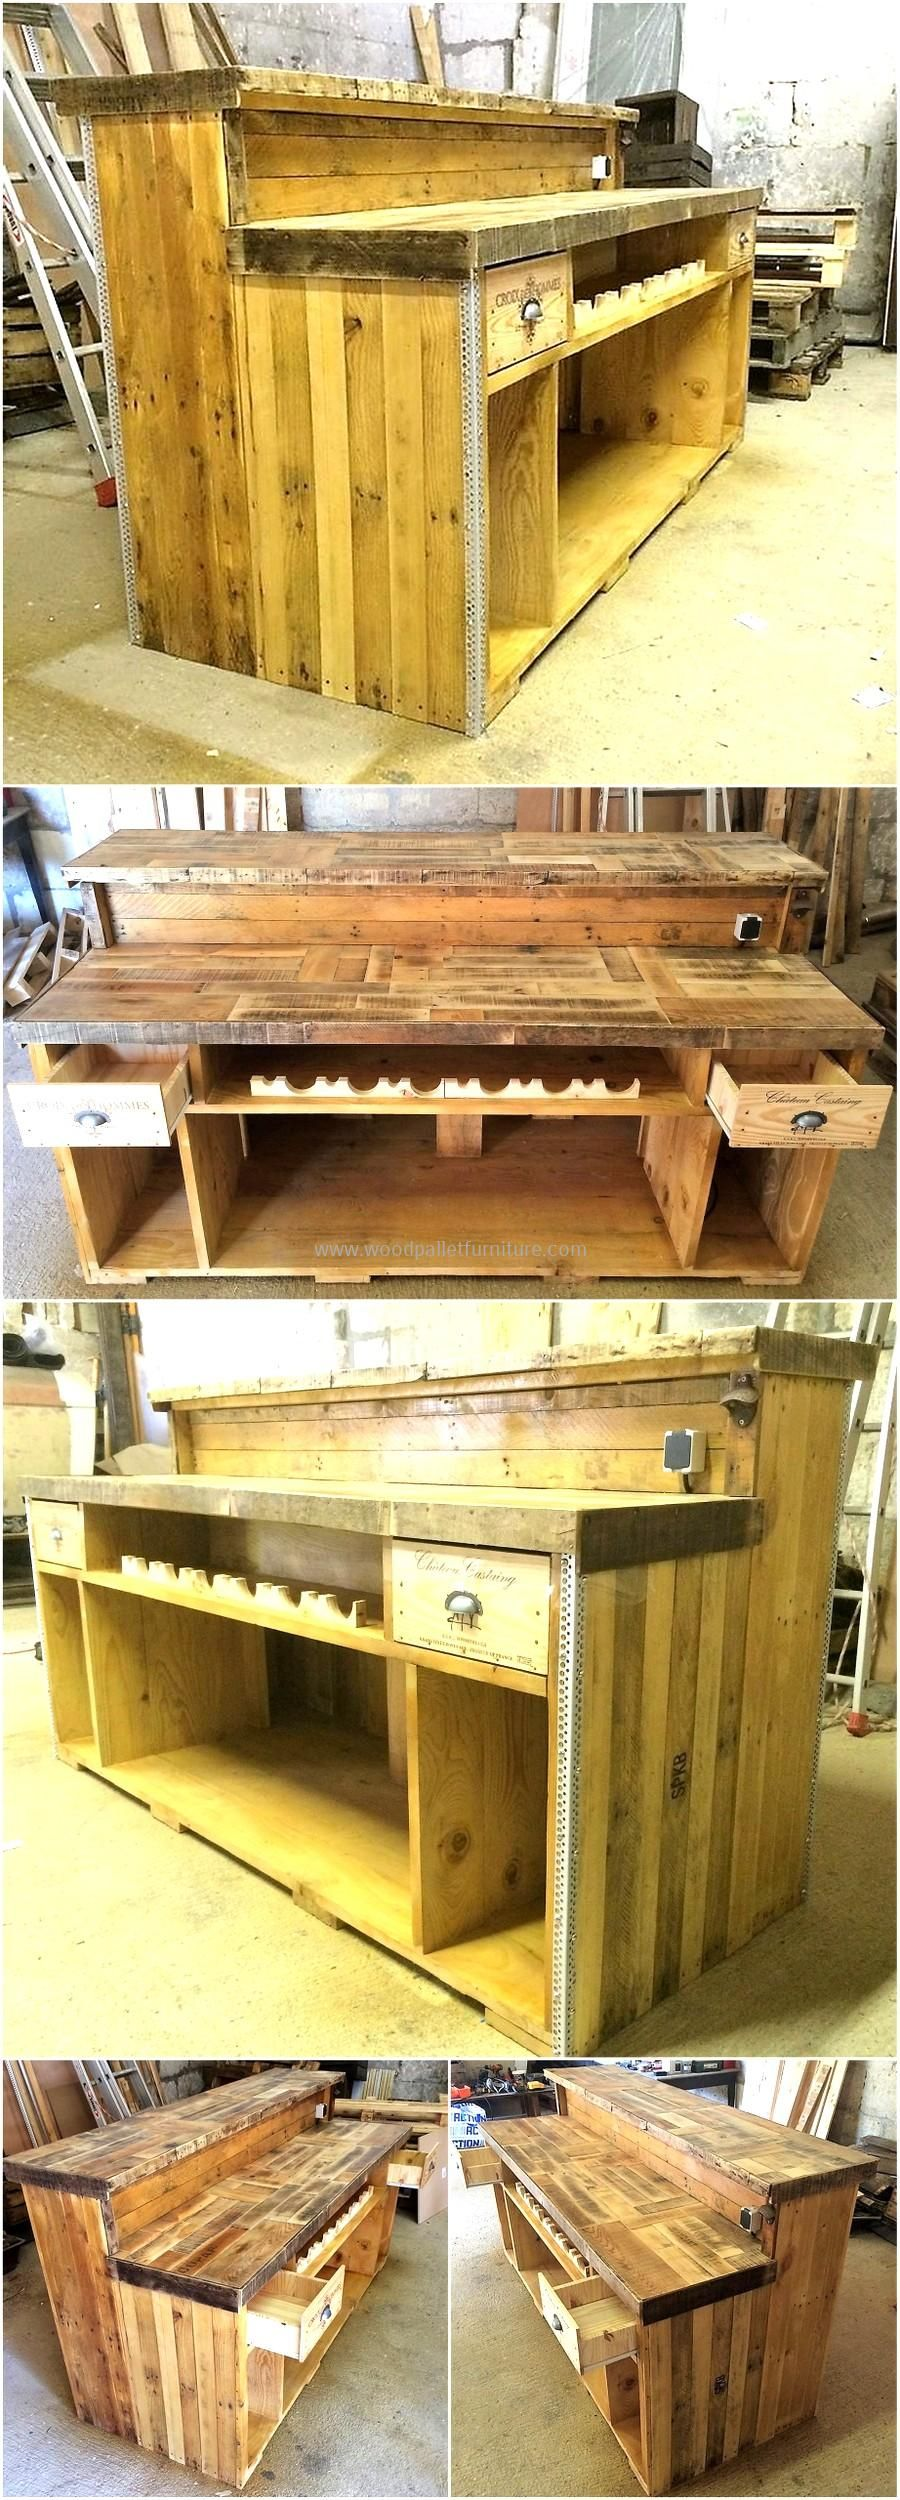 awesome plan for wooden pallet bar - Pallet Bar Plans